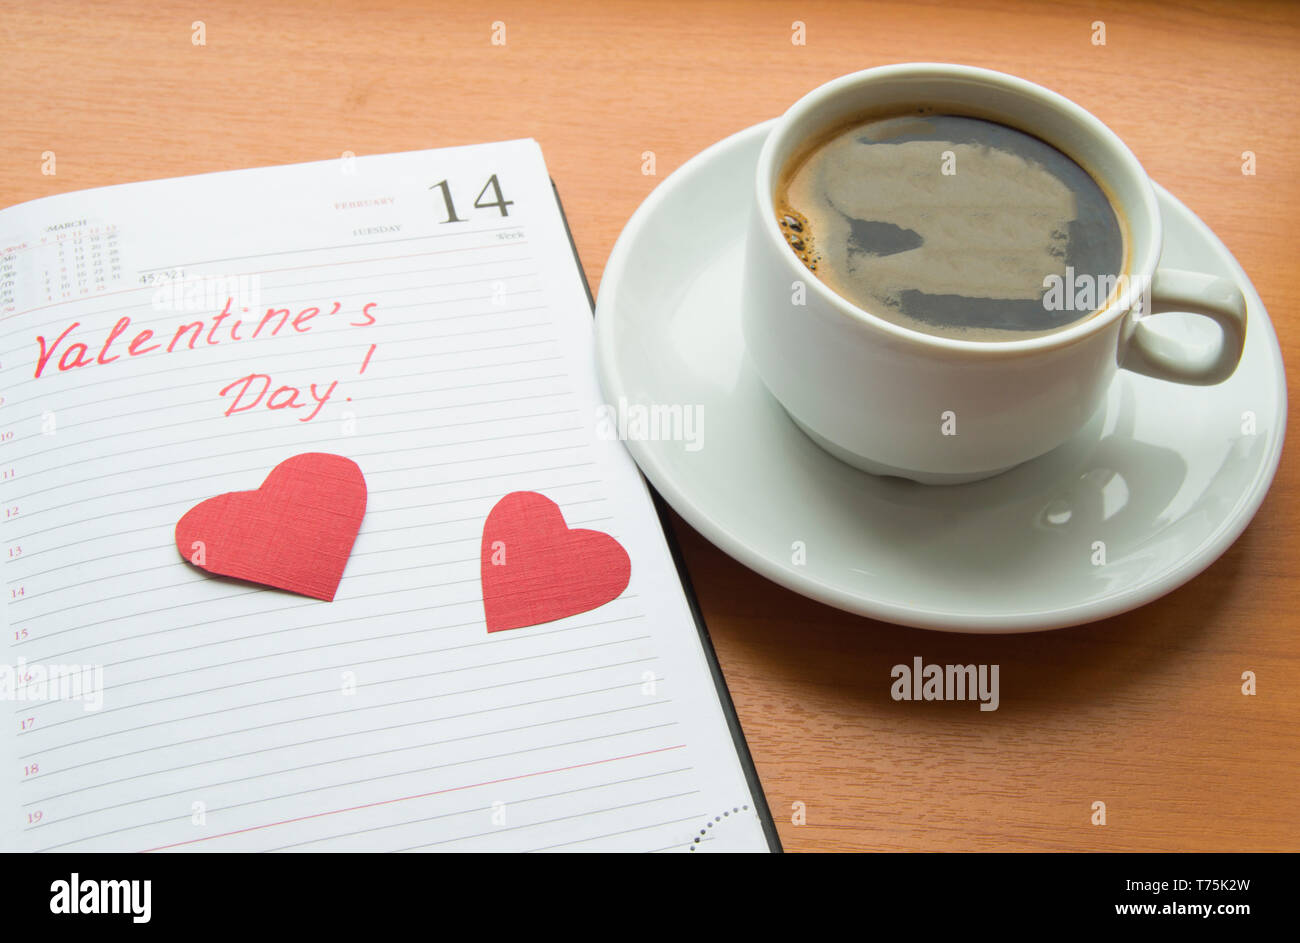 The concept of celebrating Valentine's Day, Cup of coffee, diaries, hearts - Stock Image